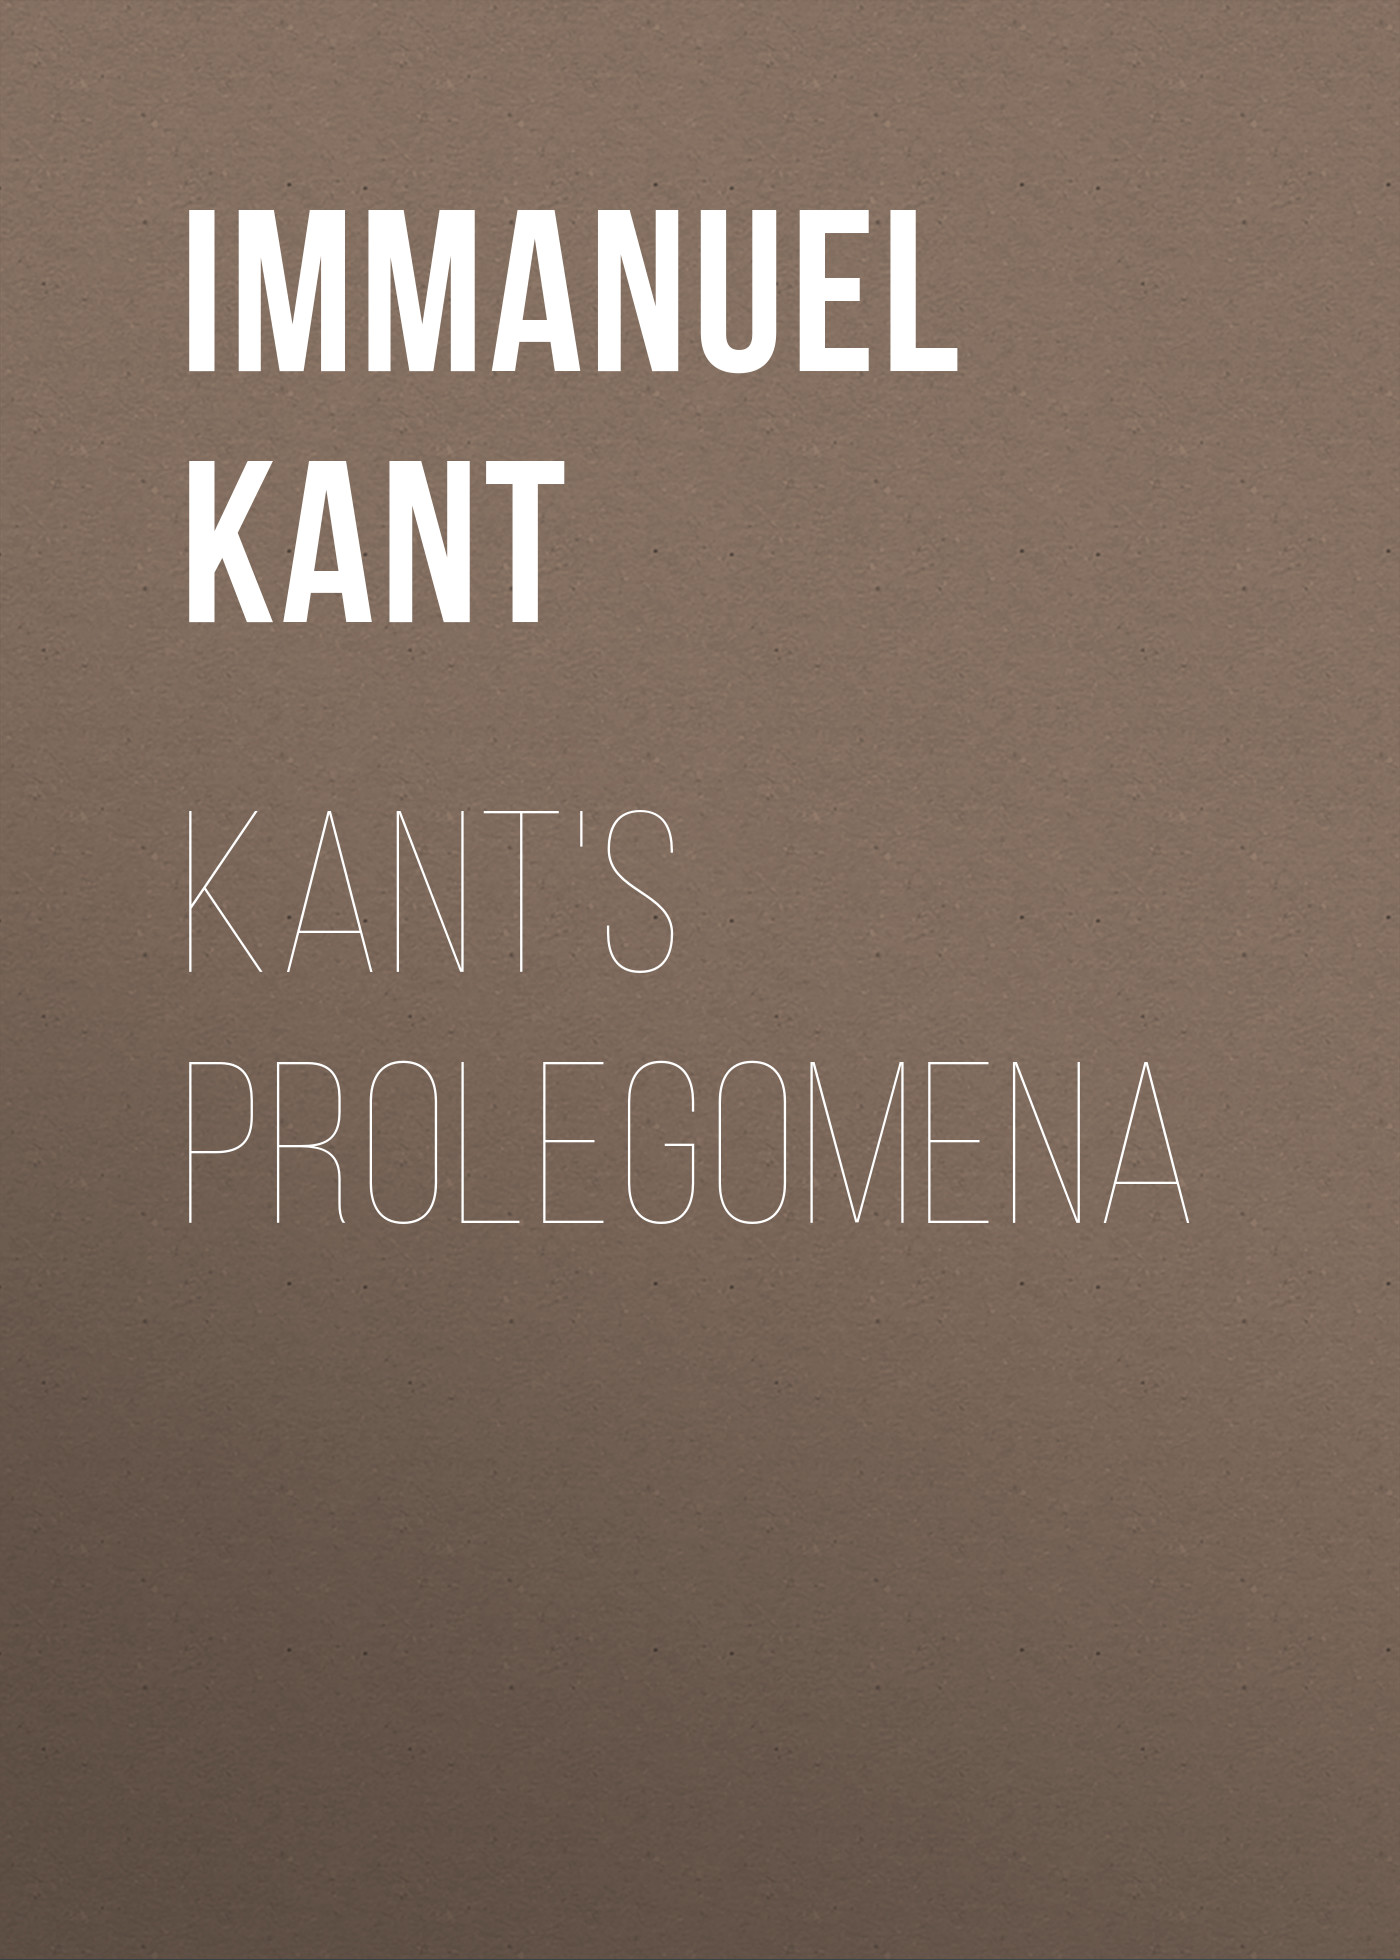 Иммануил Кант Kant's Prolegomena christian august lobeck pathologiae sermonis graeci prolegomena latin edition